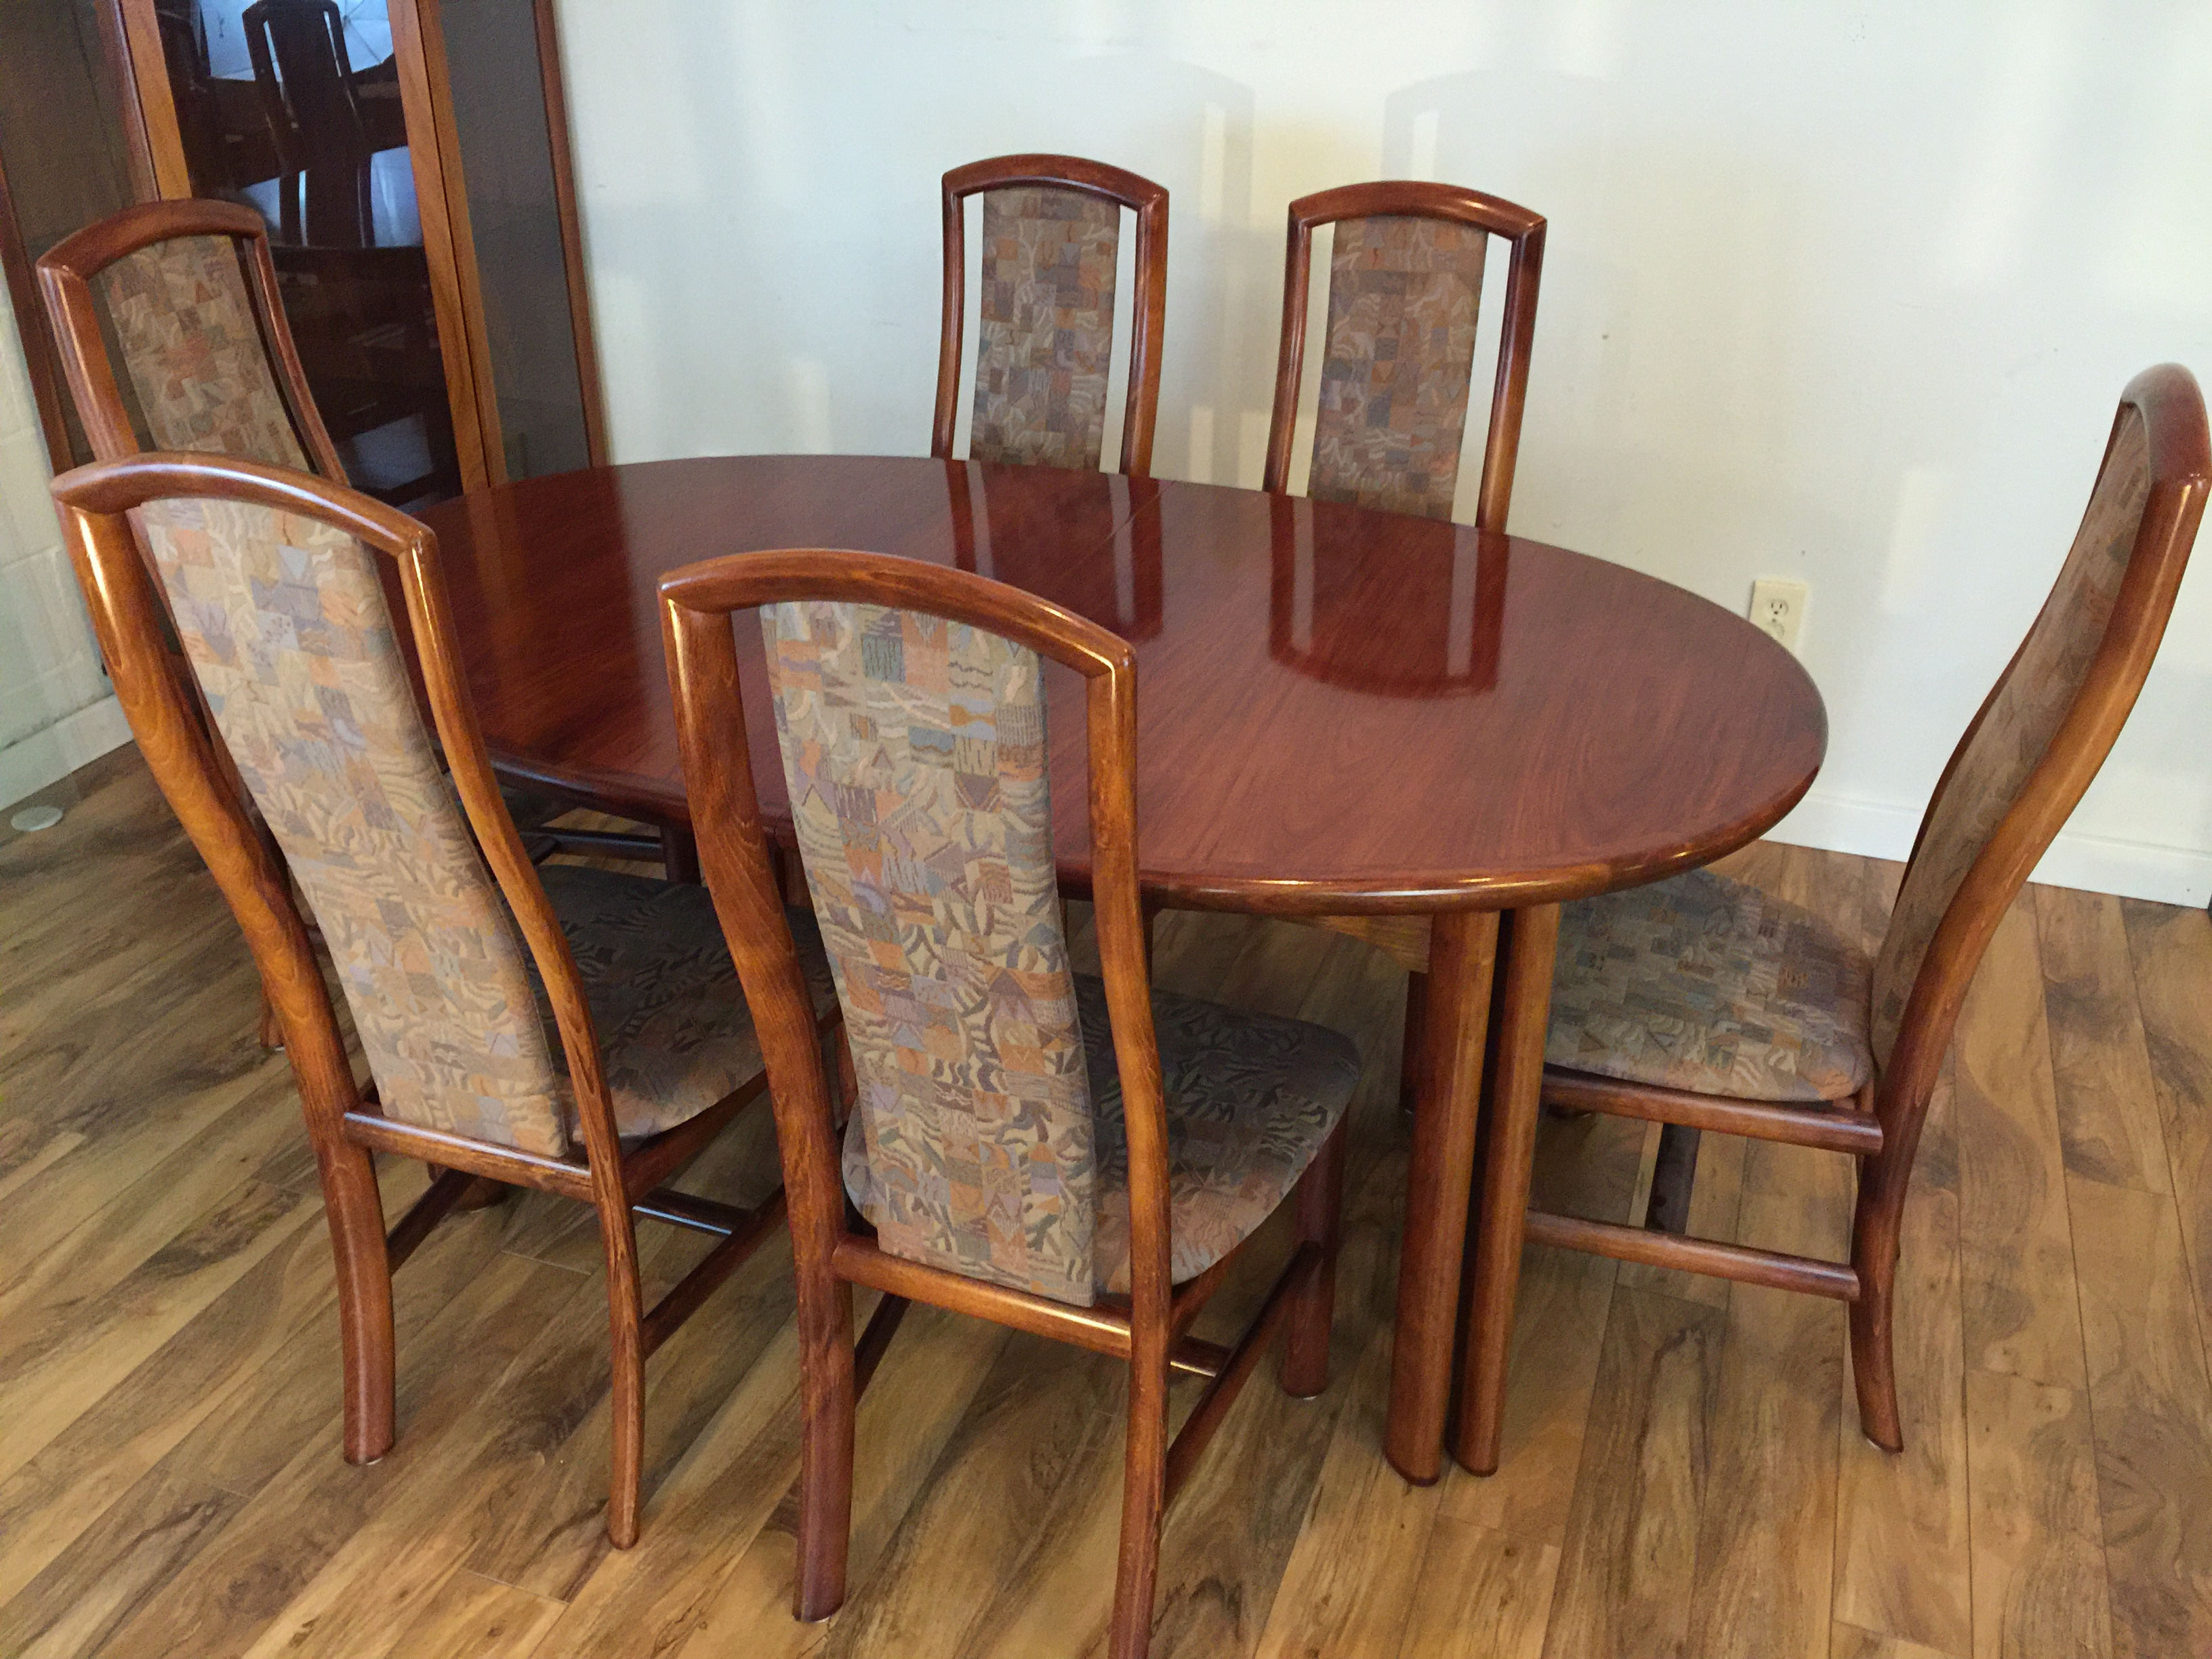 Danish Rosewood Dining Set Table amp 8 Chairs Chairish : a768808a 8e8c 4088 b5c2 82bb741d7d61aspectfitampwidth640ampheight640 from www.chairish.com size 640 x 640 jpeg 51kB